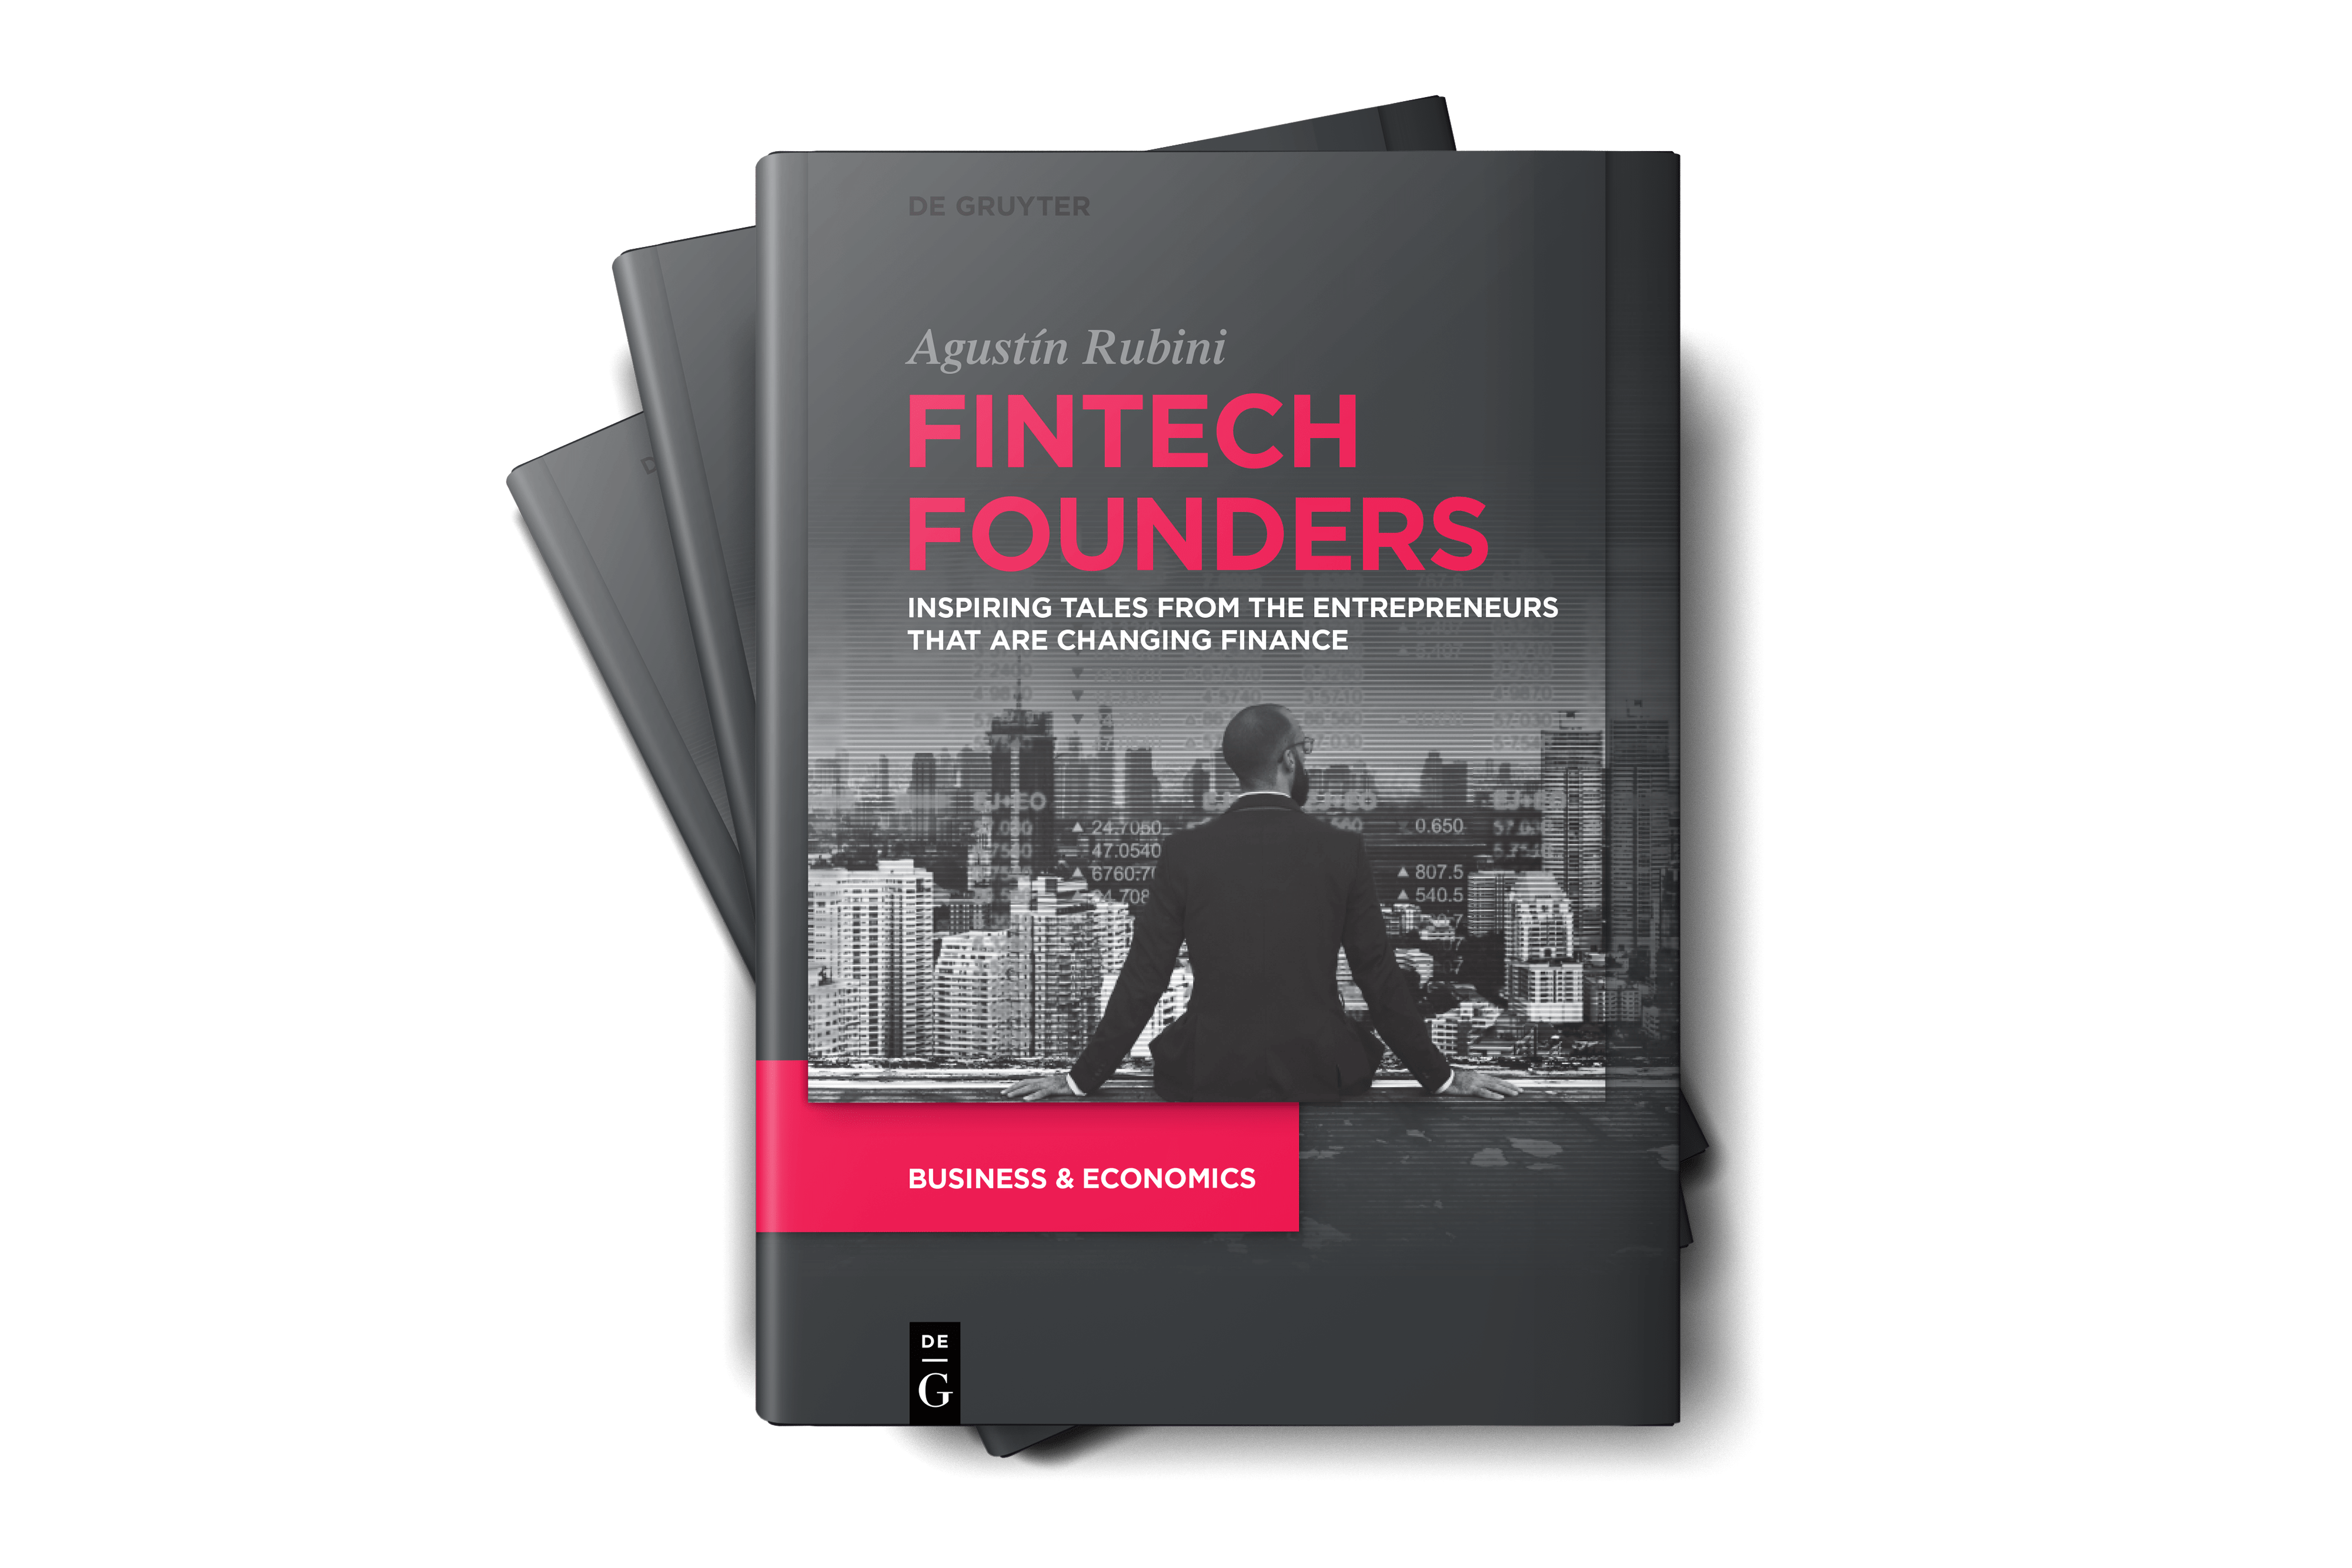 Fintech Founders book hits the top of the financial technology chart